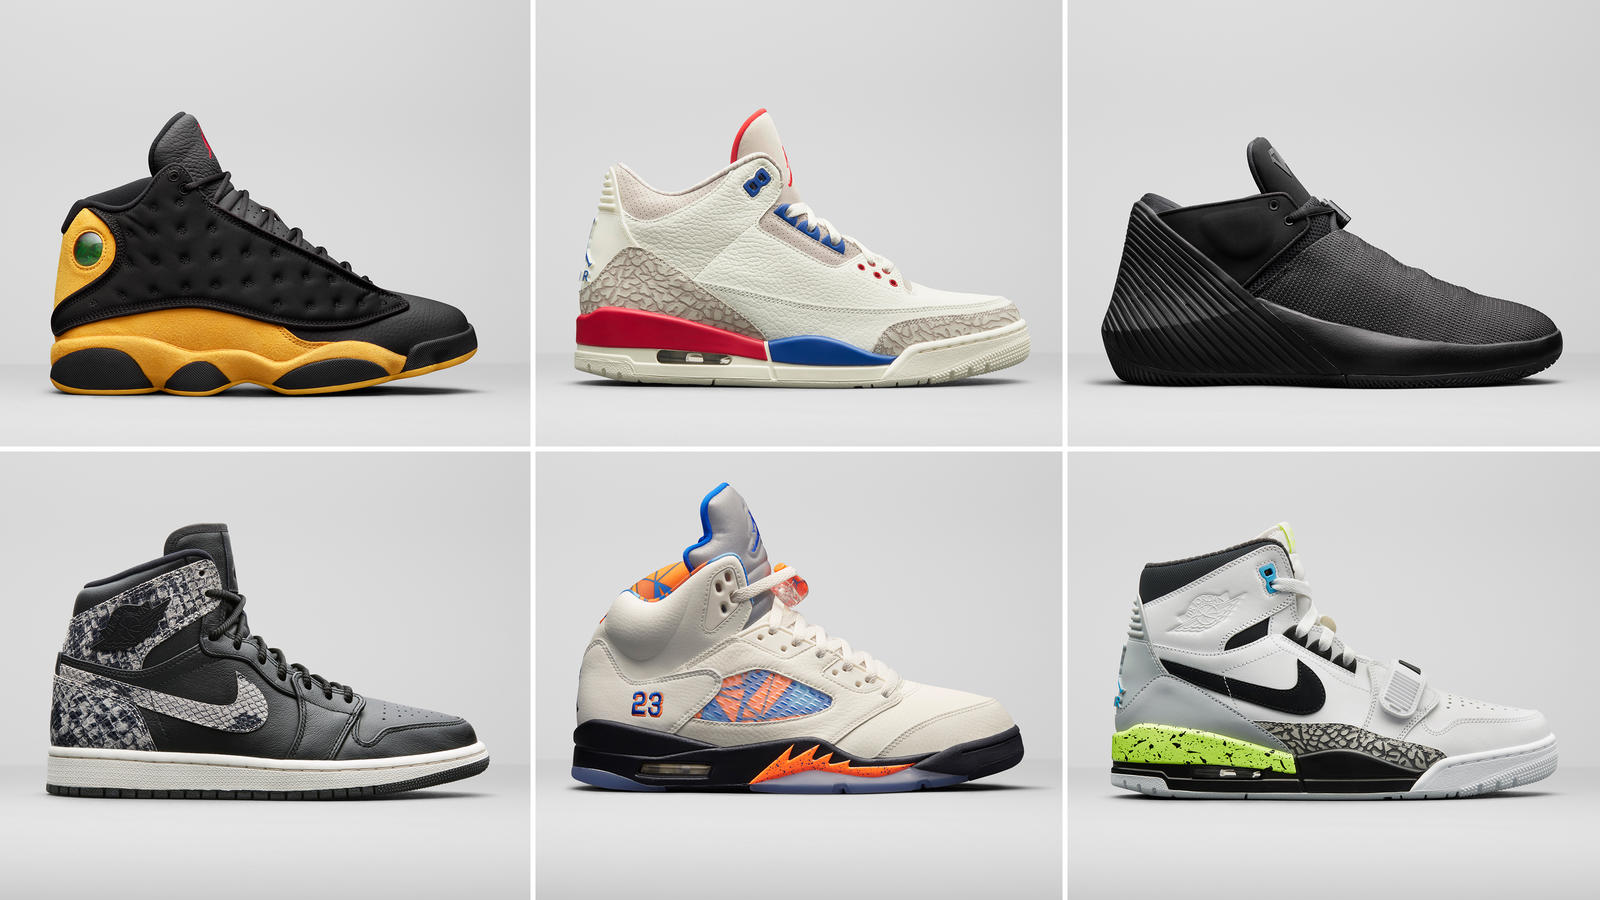 Jordan Brand Fall 2018 Preview - Nike News 7512d7623e7f